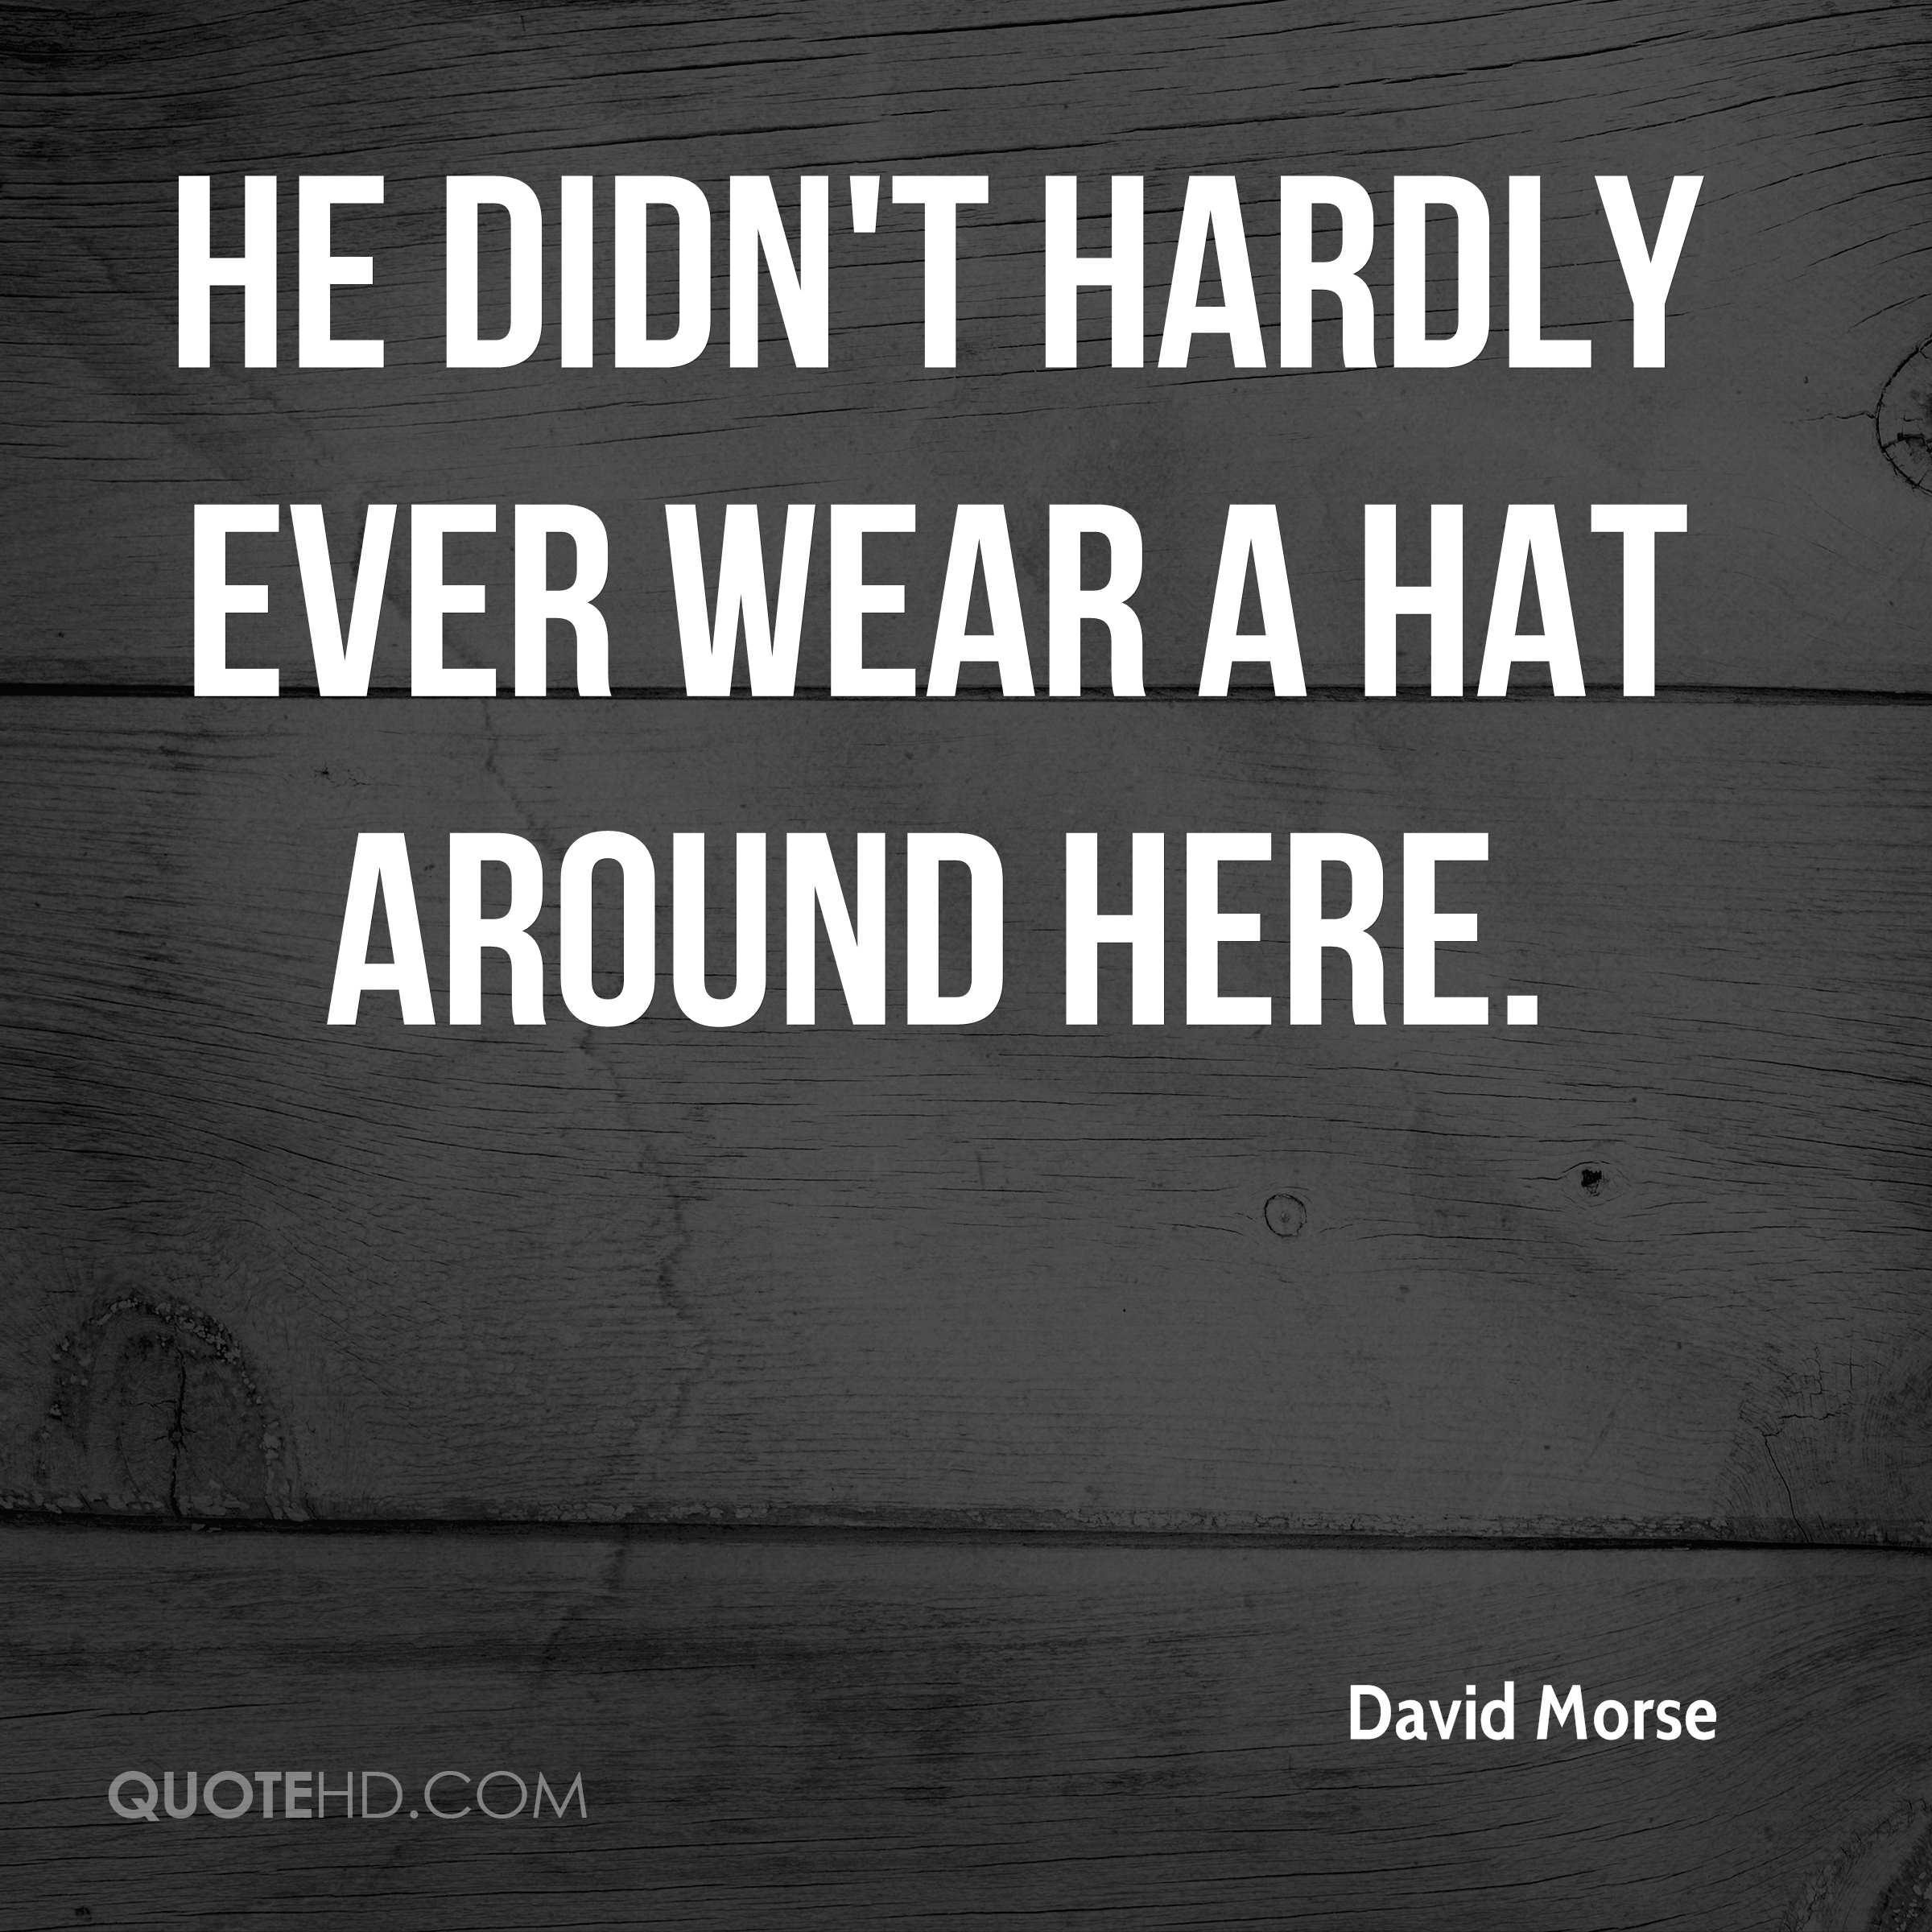 He didn't hardly ever wear a hat around here.